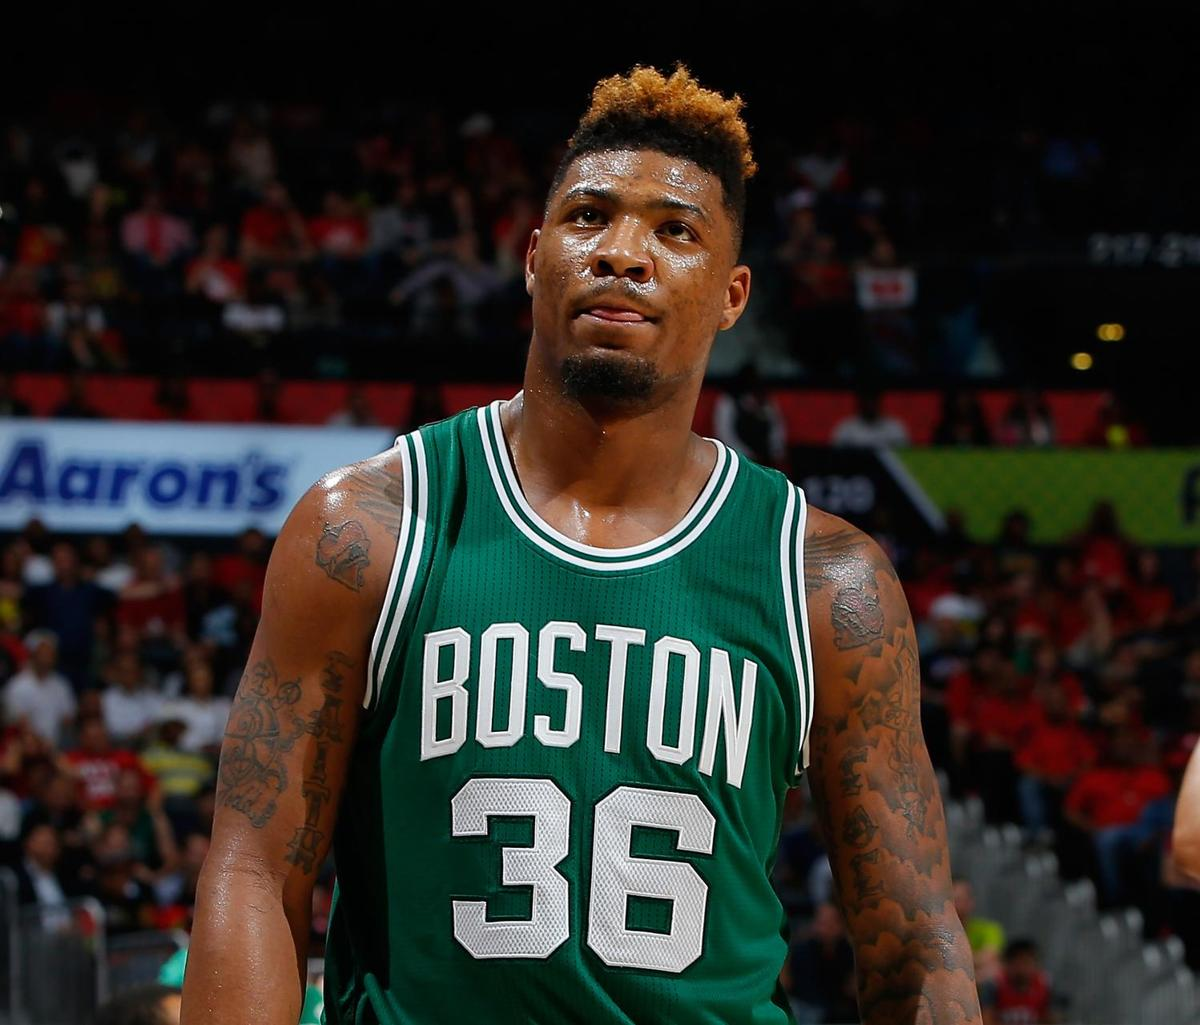 975dbb15353 ... Marcus Smart named to USA Select Team for second time Boston Celtics ...